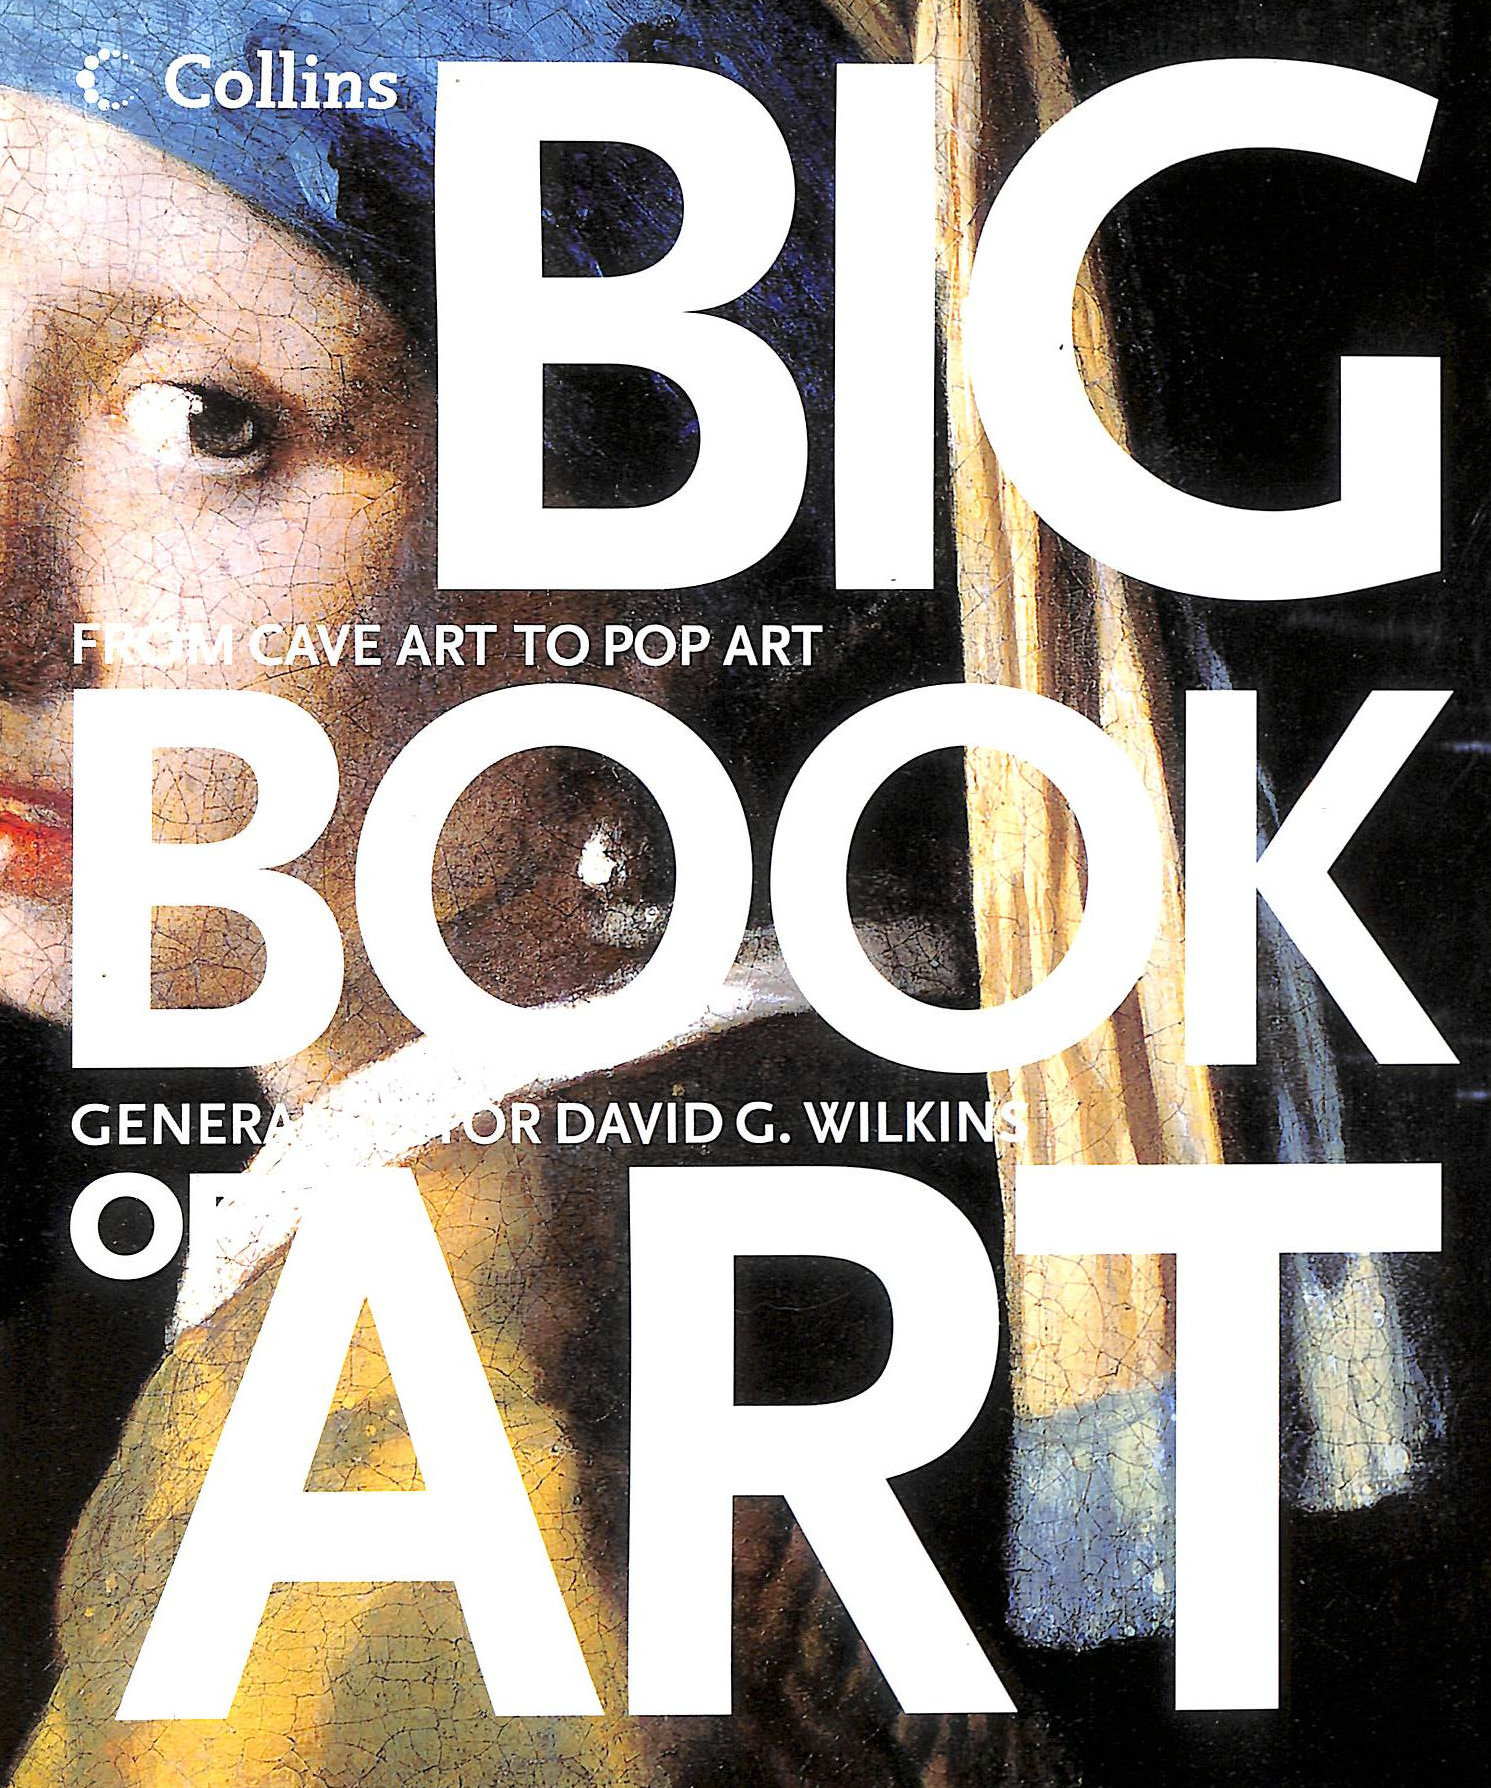 Image for Collins Big Book of Art